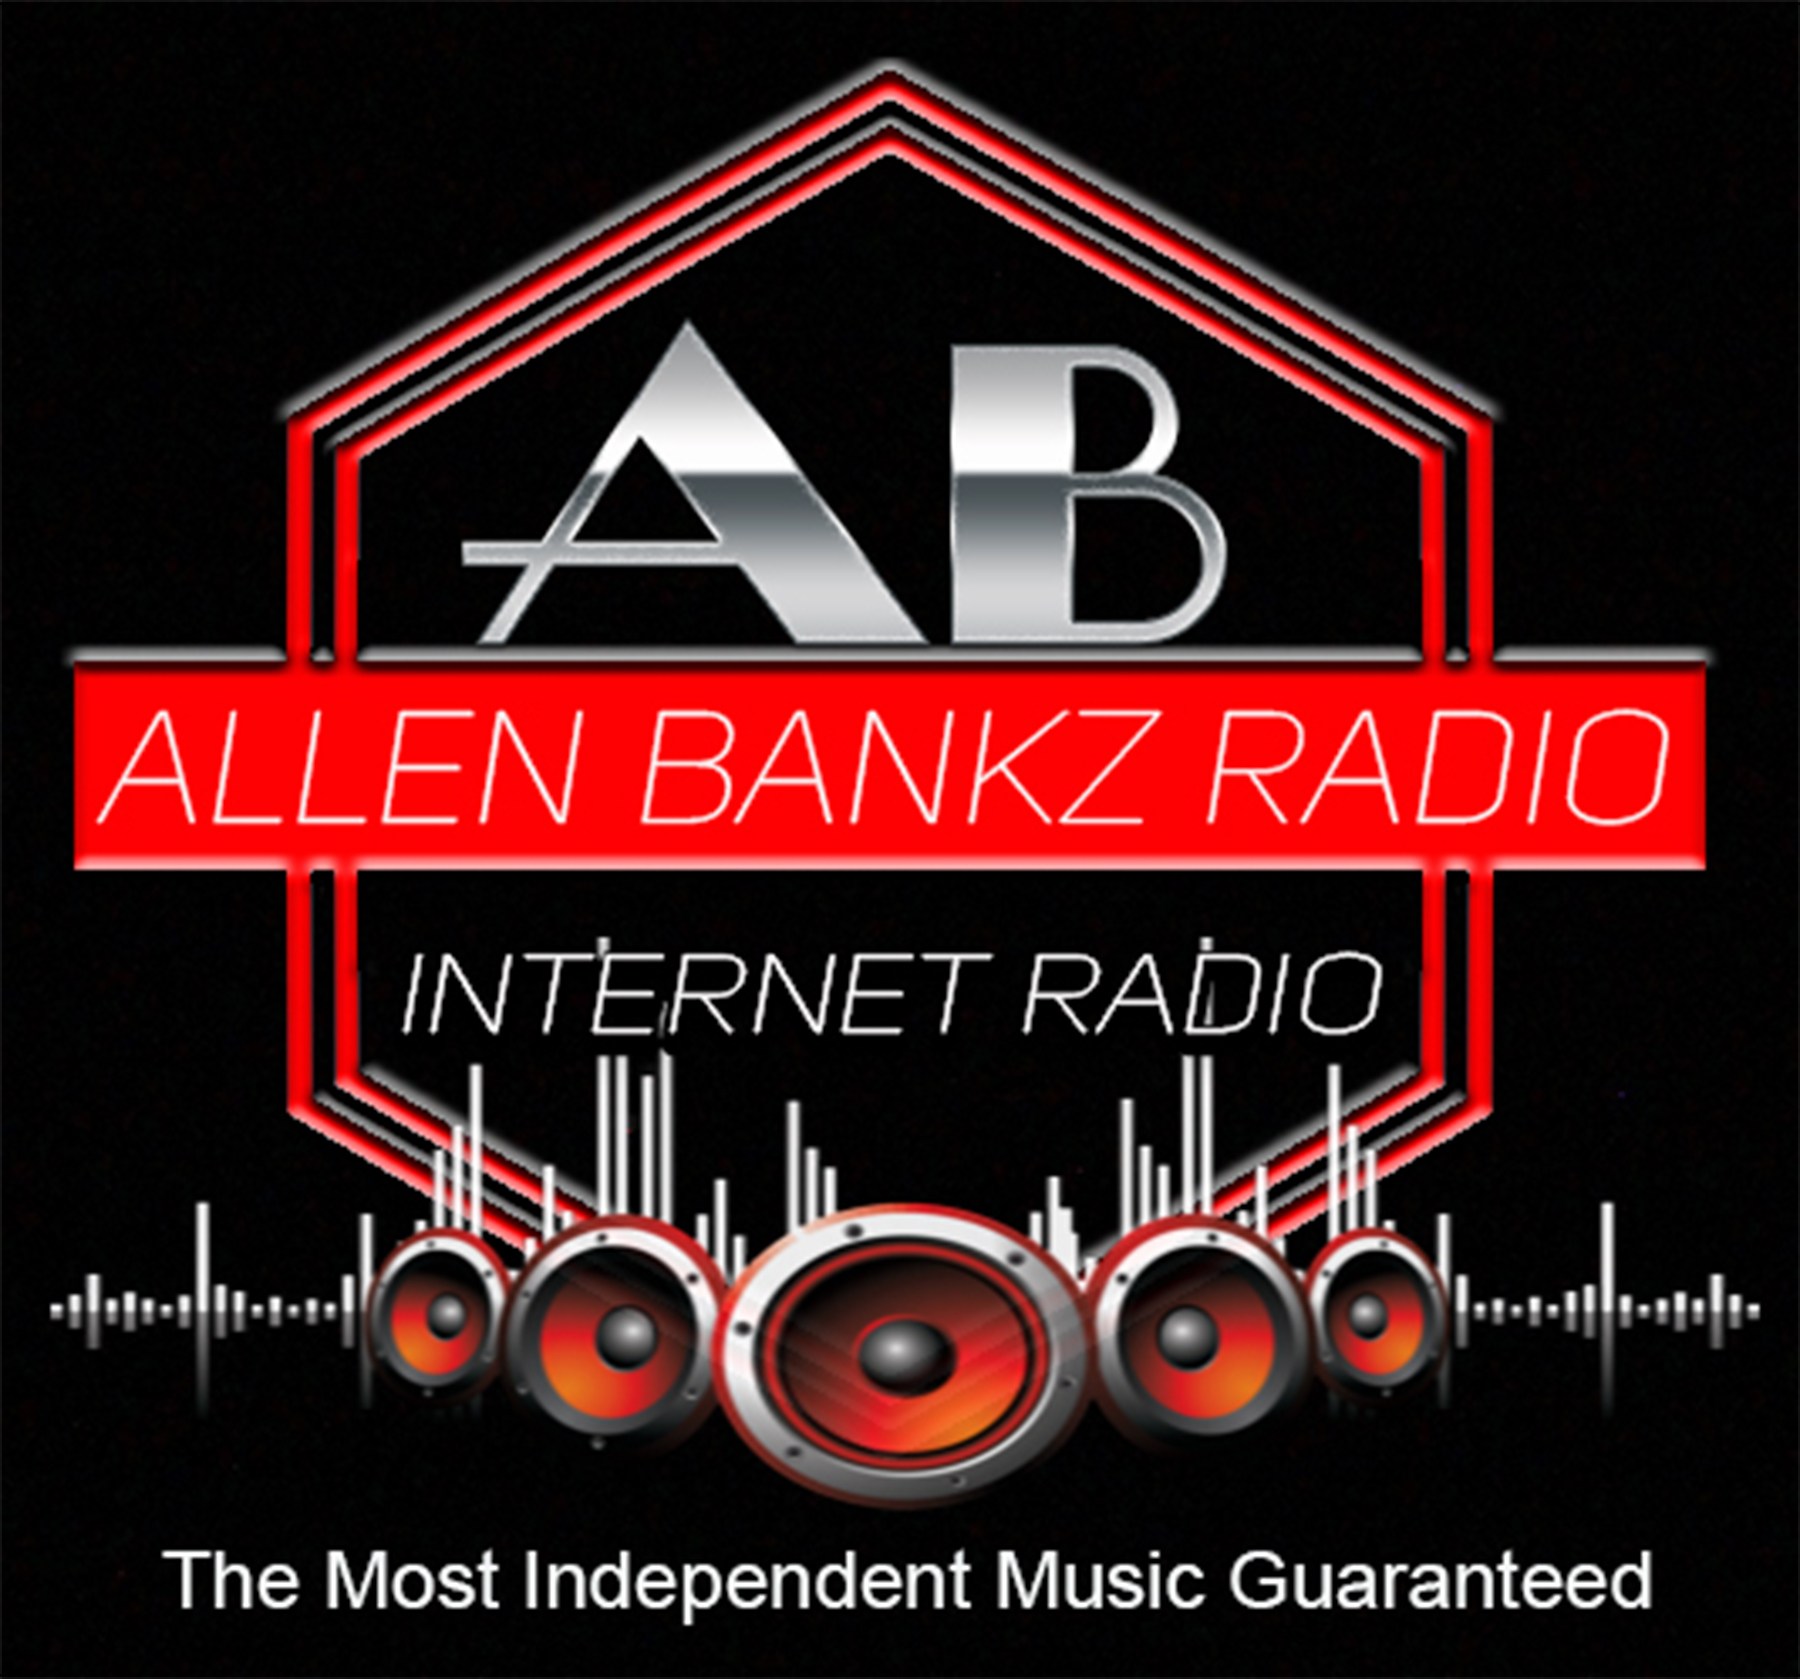 ALLEN BANKZ RADIO